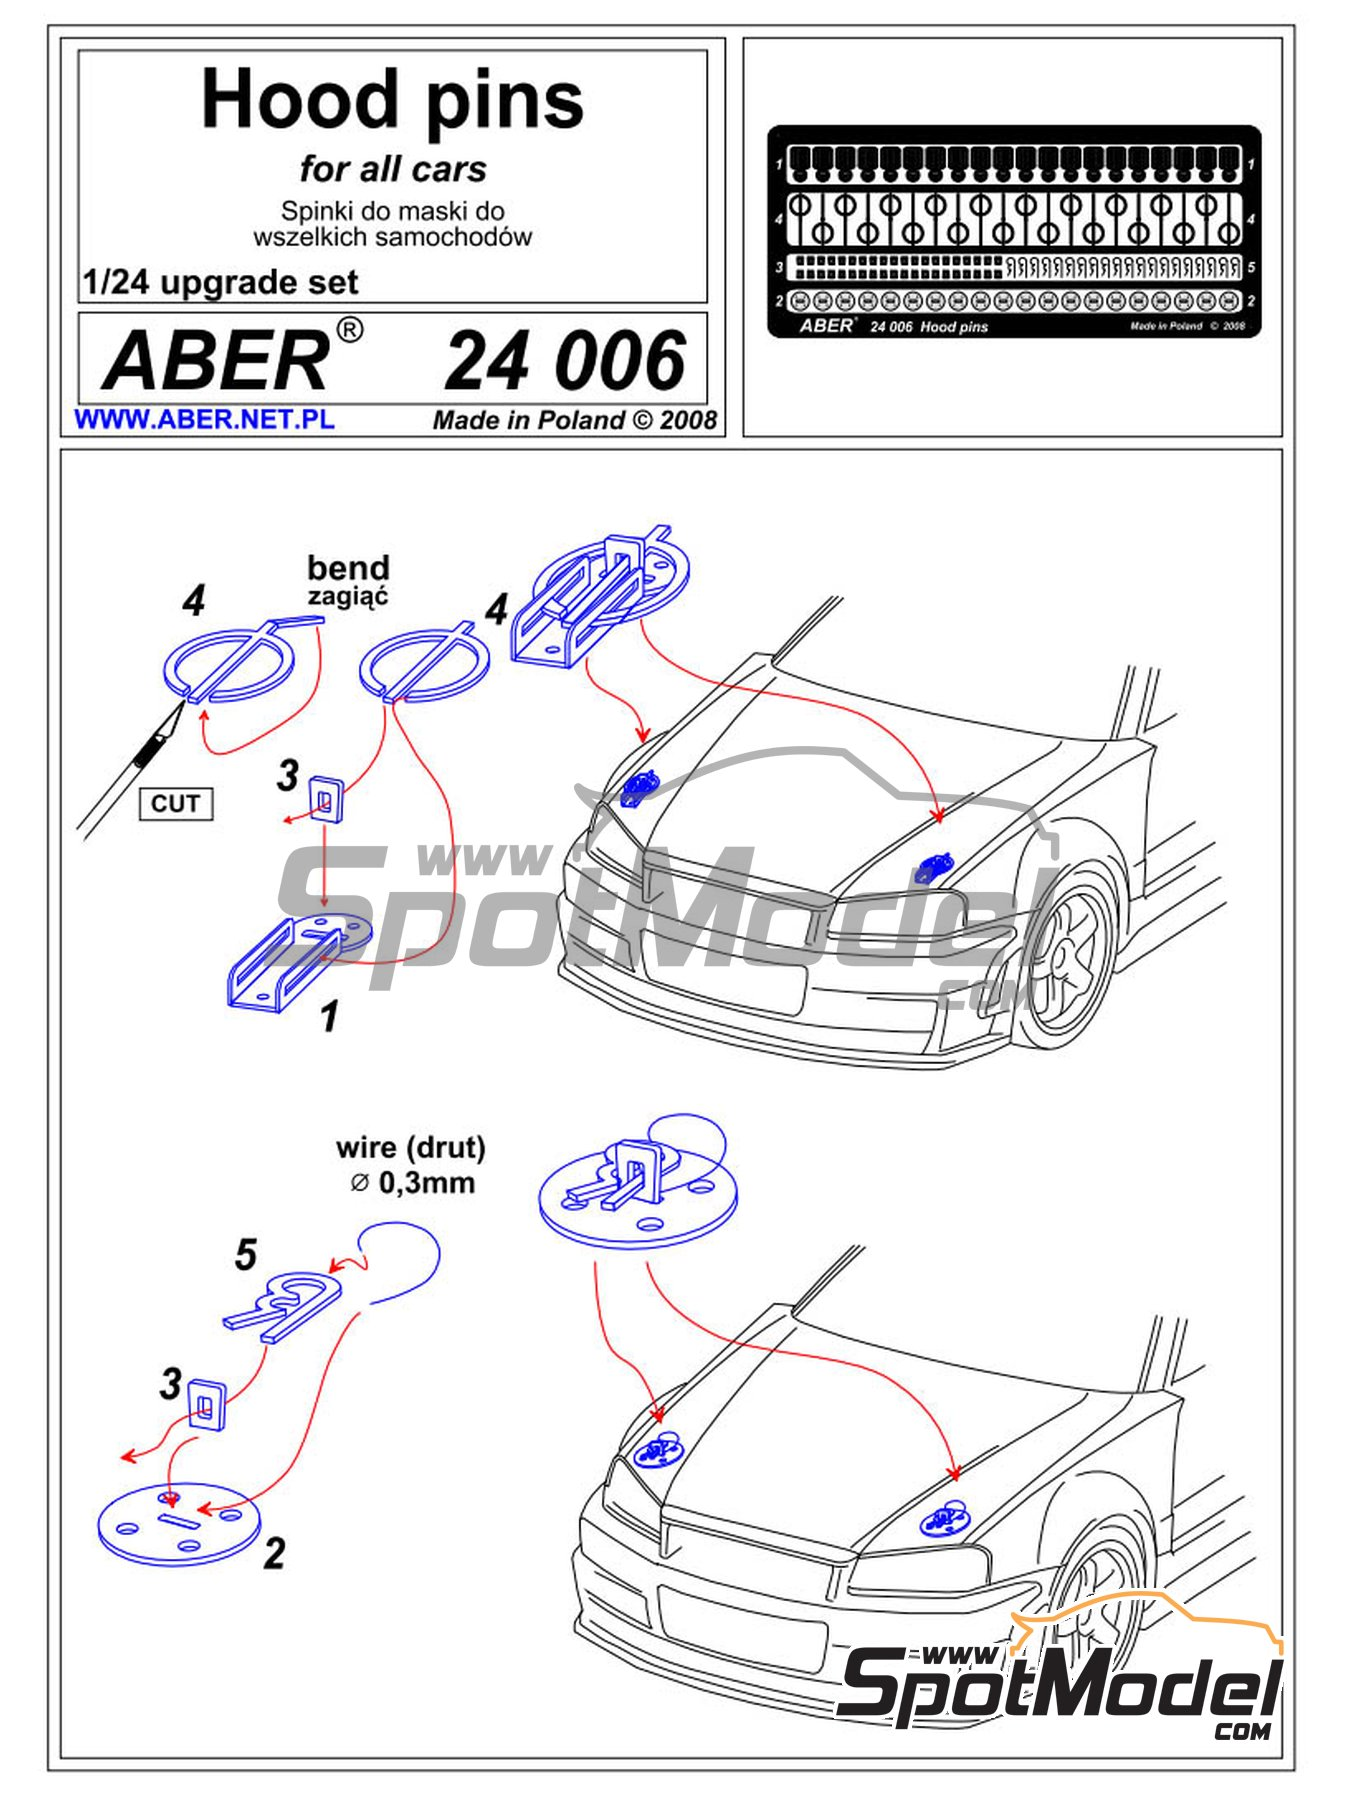 Bonnet pins | Detail in 1/24 scale manufactured by Aber (ref. 24.006) image